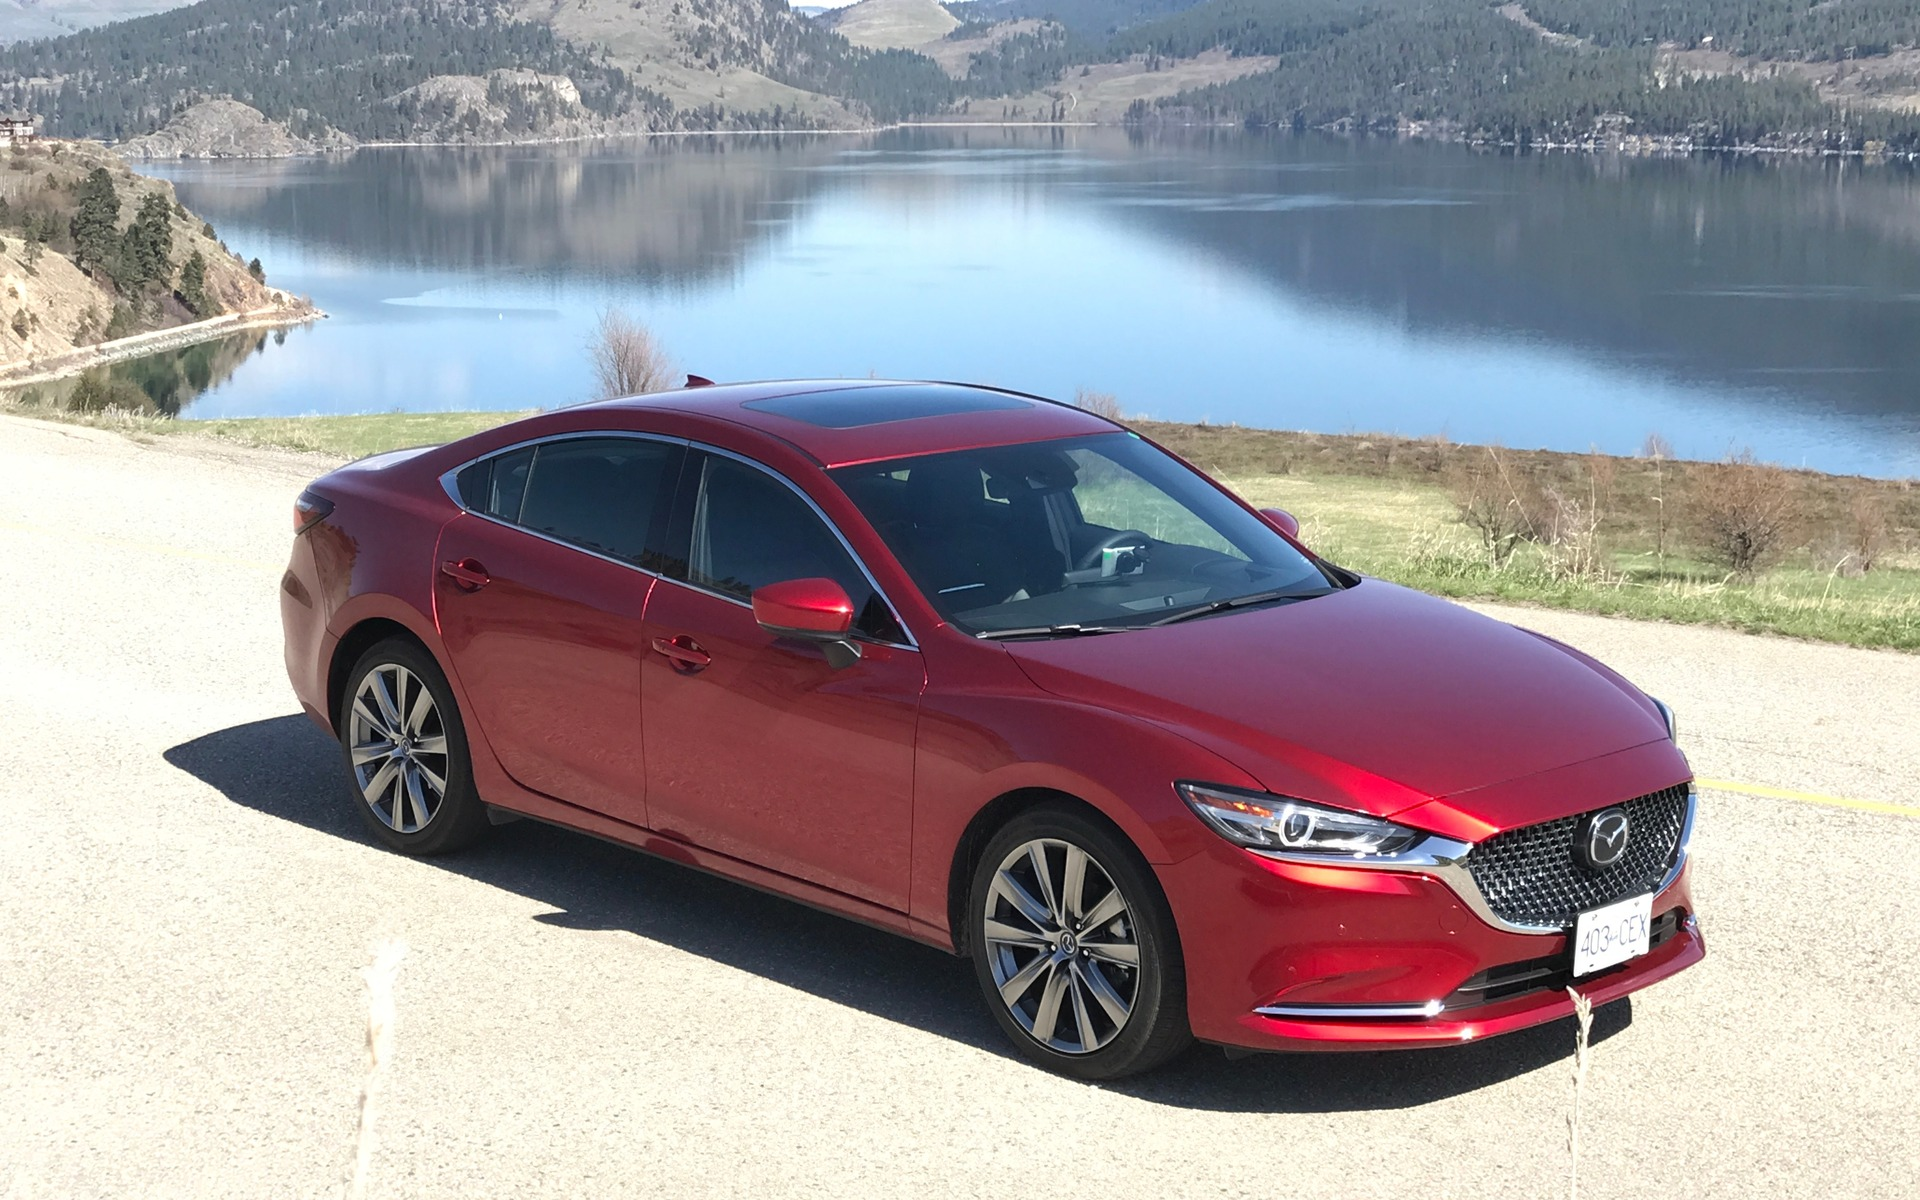 2018 Mazda6: New and More Upscale